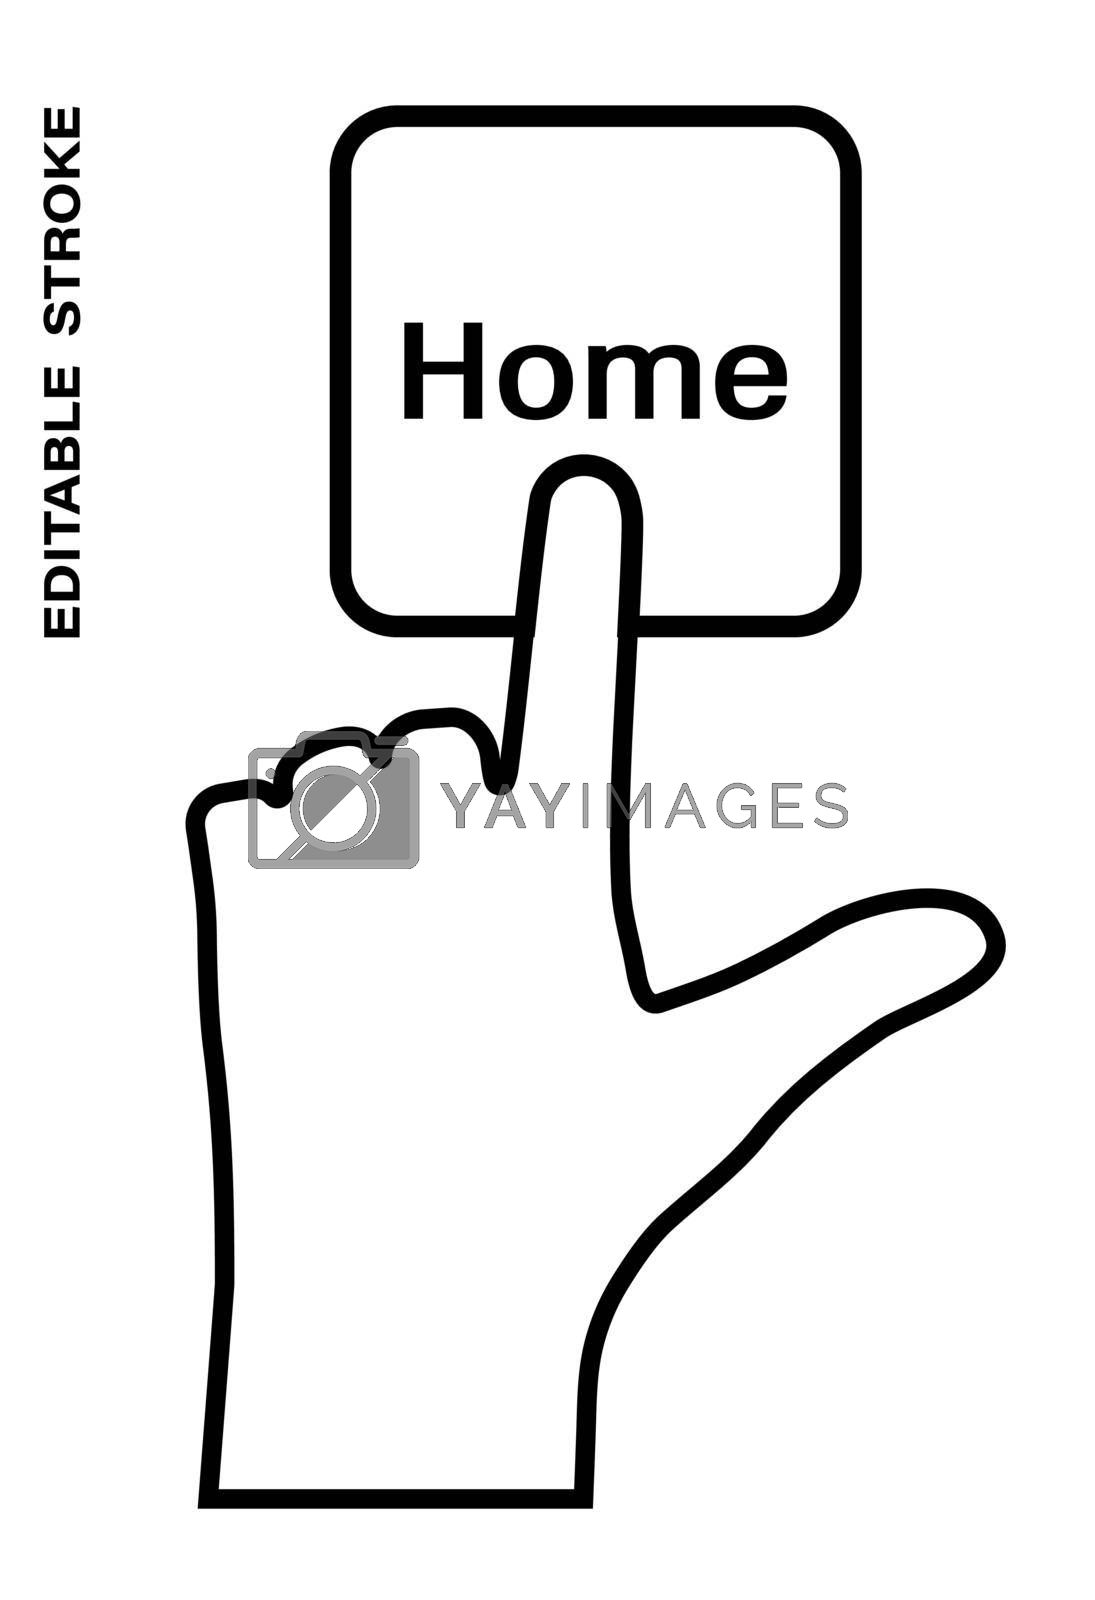 Icon editable stroke, human hand presses the keyboard button Home with the index finger. Getting help, additional information. Isolated vector on white background